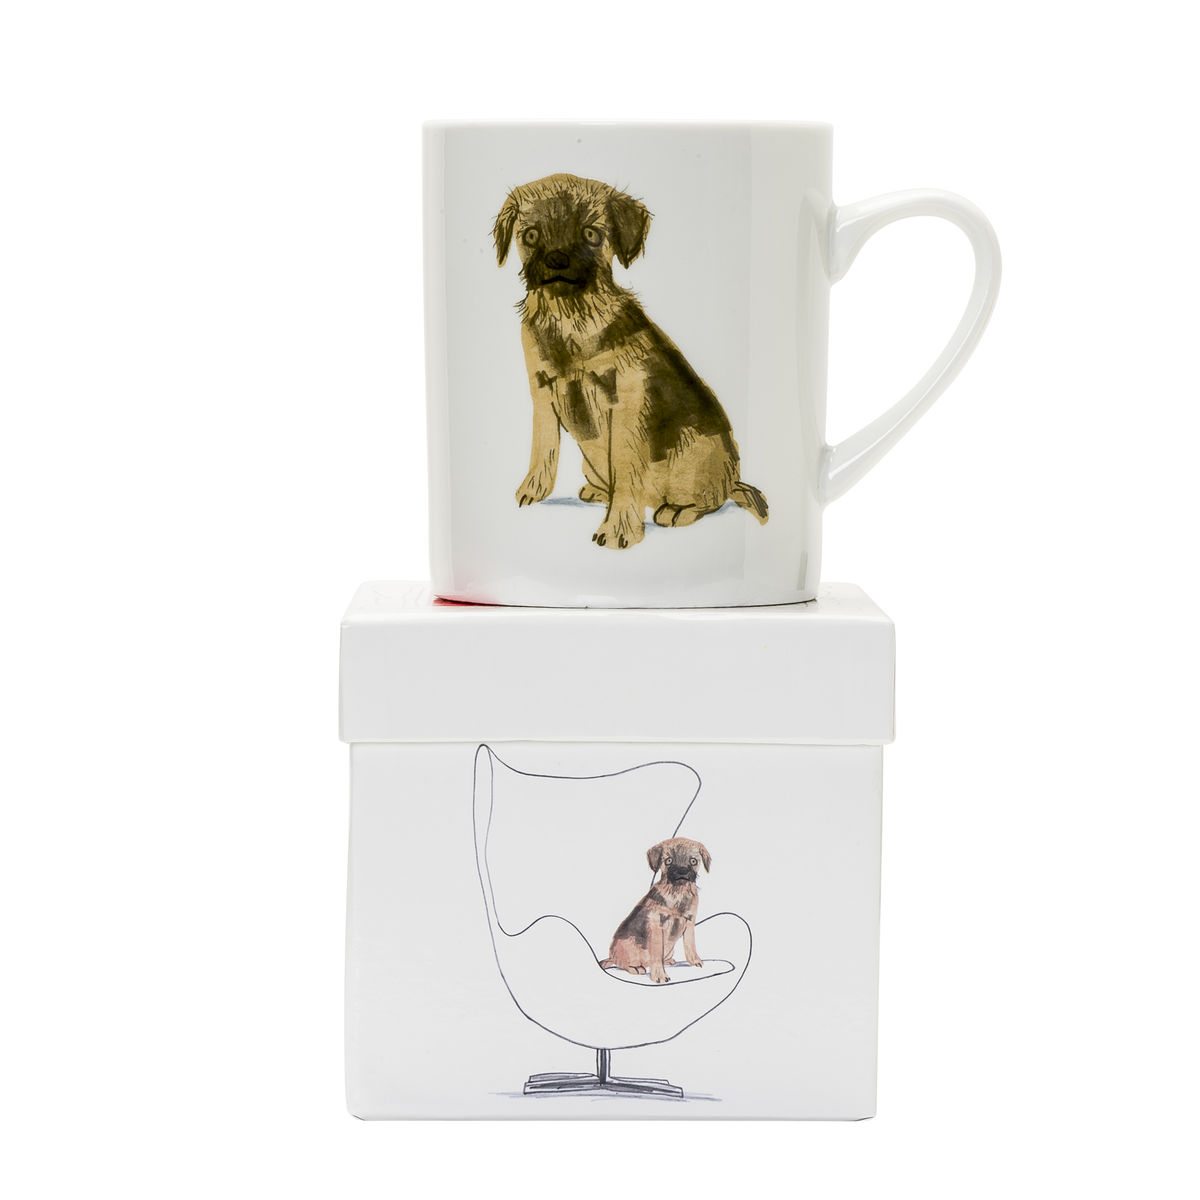 70% OFF Sit! Big Mug by Magpie - Terrier/Pug/Poodle/Spaniel/Dachshund - product images  of